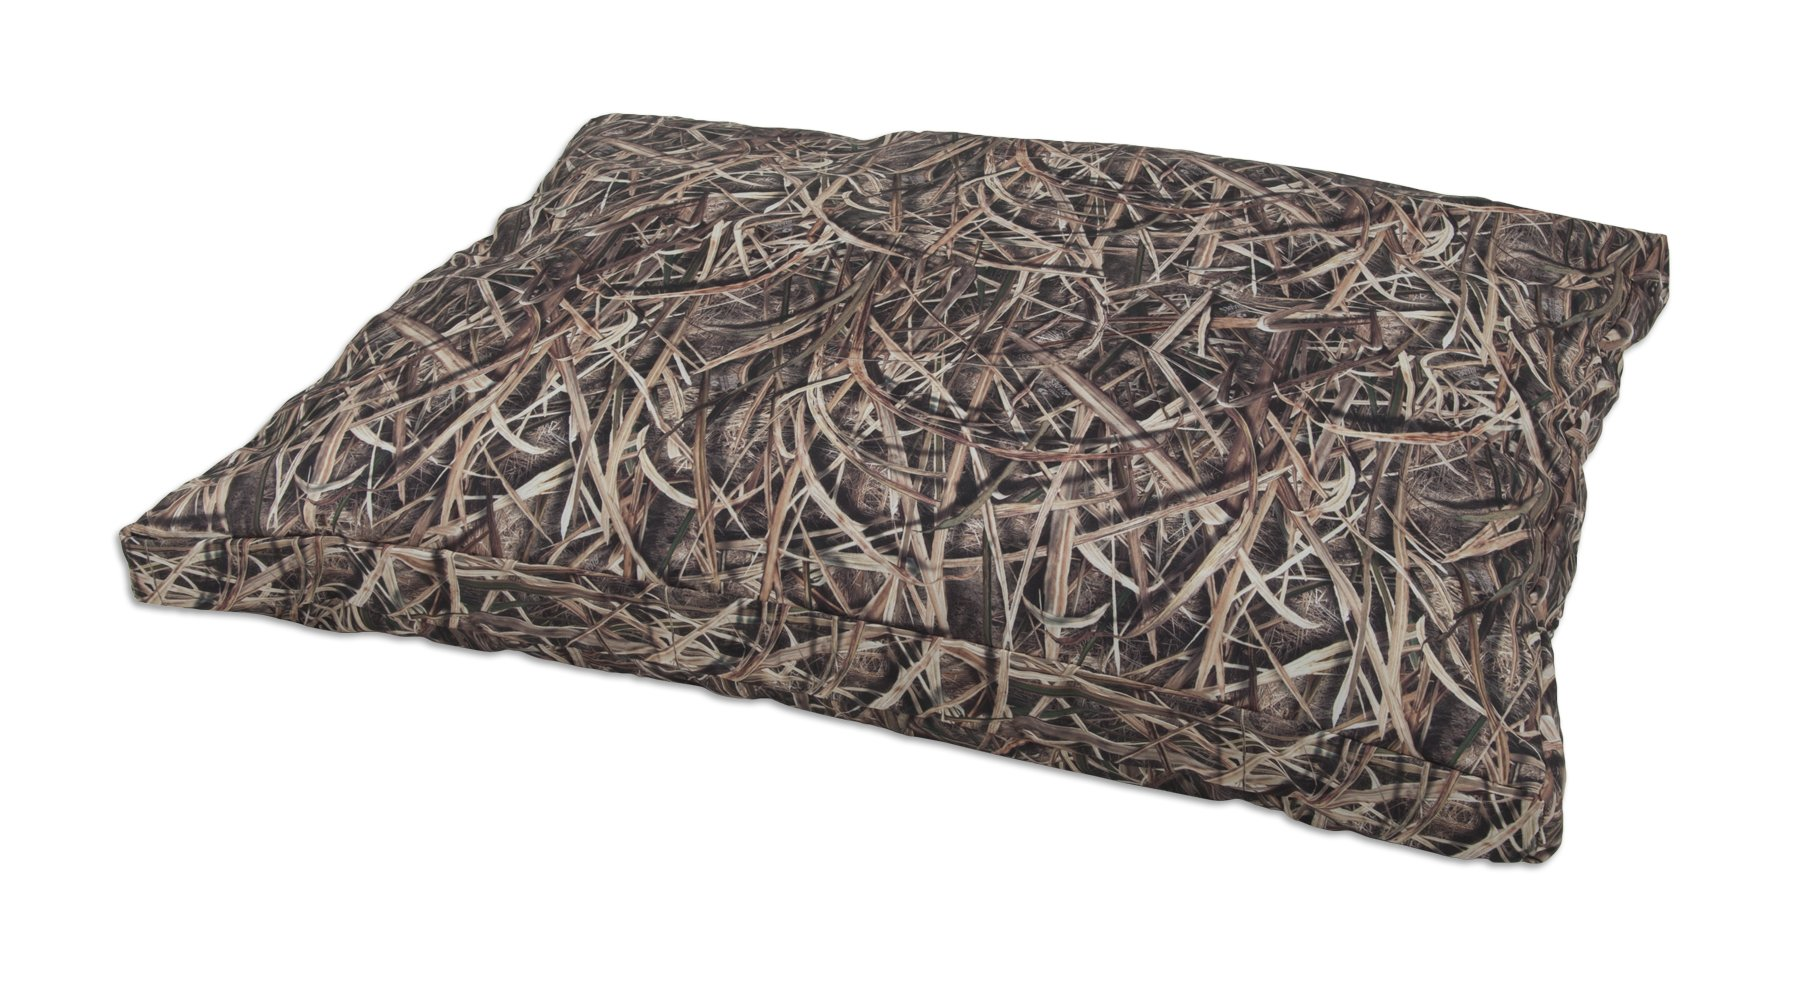 Mossy Oak 80148 Shadow Grass Blades 4-Pack Gusseted Pillow Bed for Pets, 36 by 45-Inch